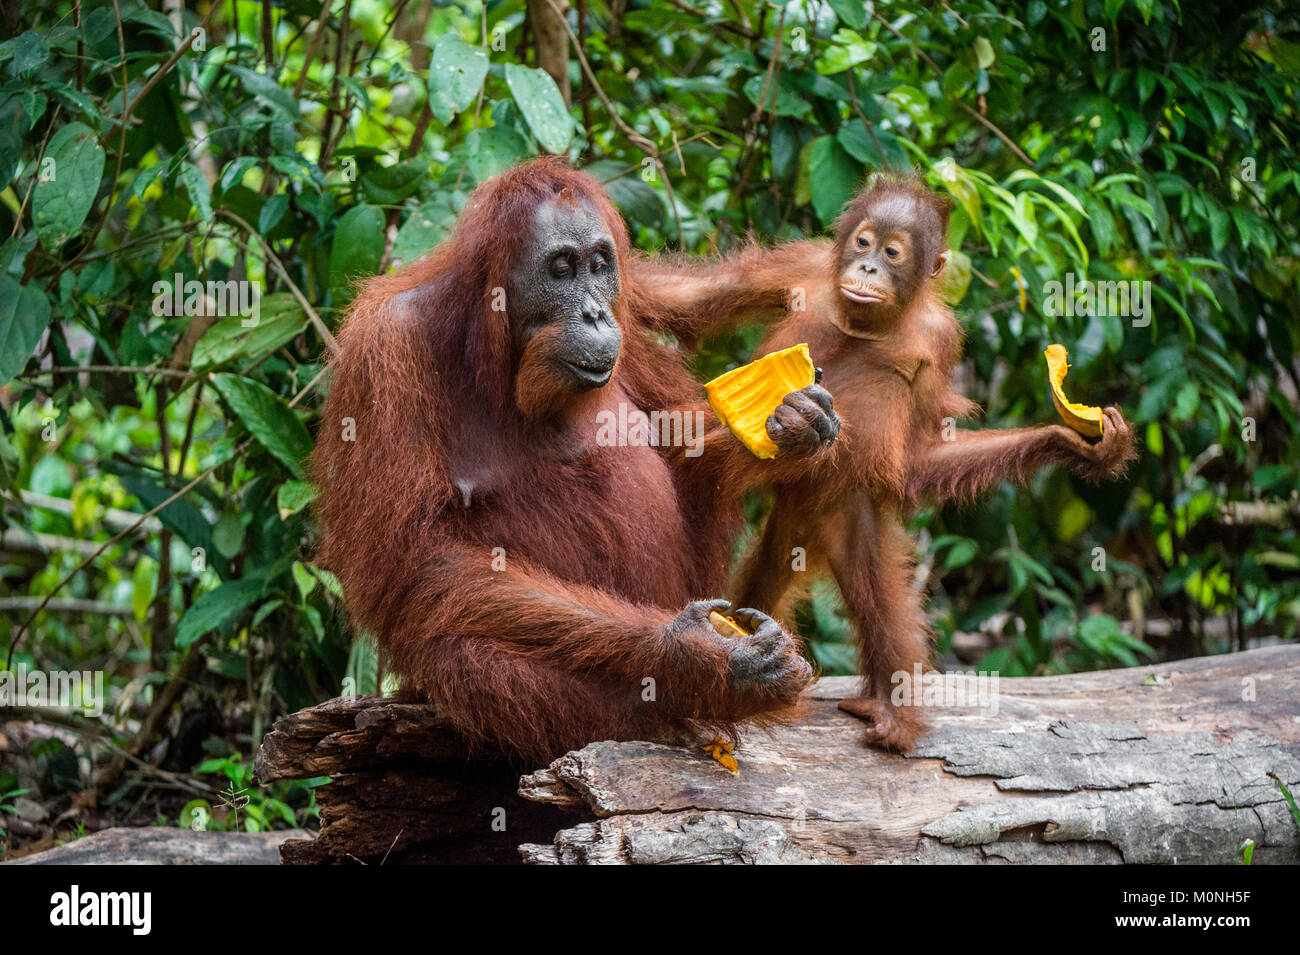 Mother orangutan and cub. Bornean orangutan (Pongo  pygmaeus wurmbii) in the wild nature. Rainforest of Island Borneo. - Stock Image